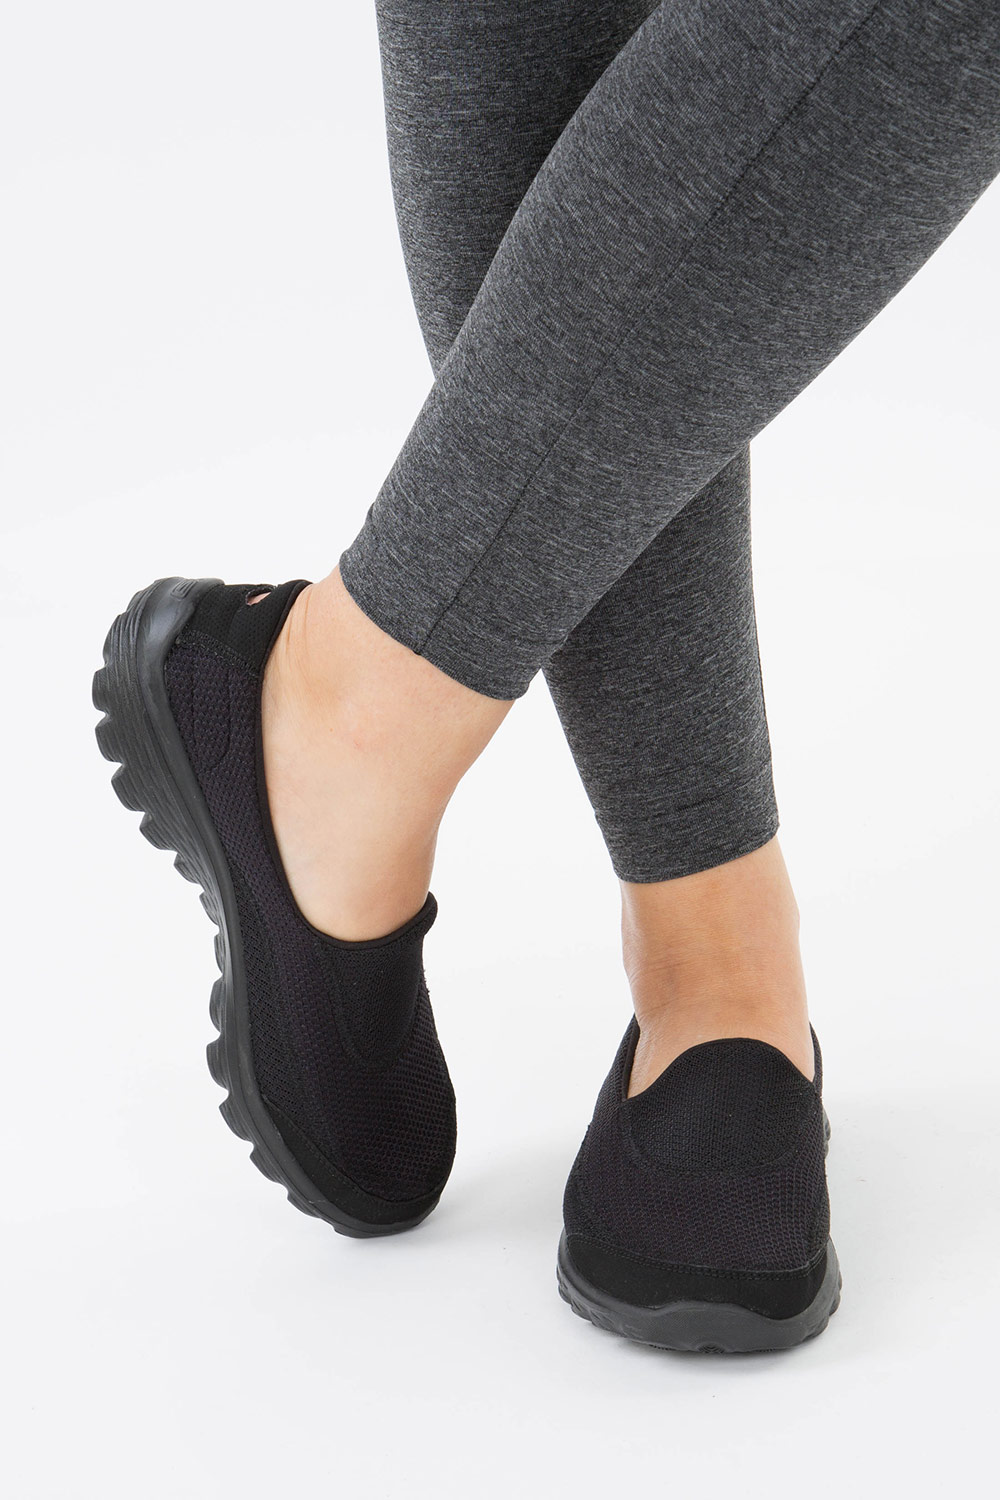 skechers go walk 2 shoes womens flats for everything